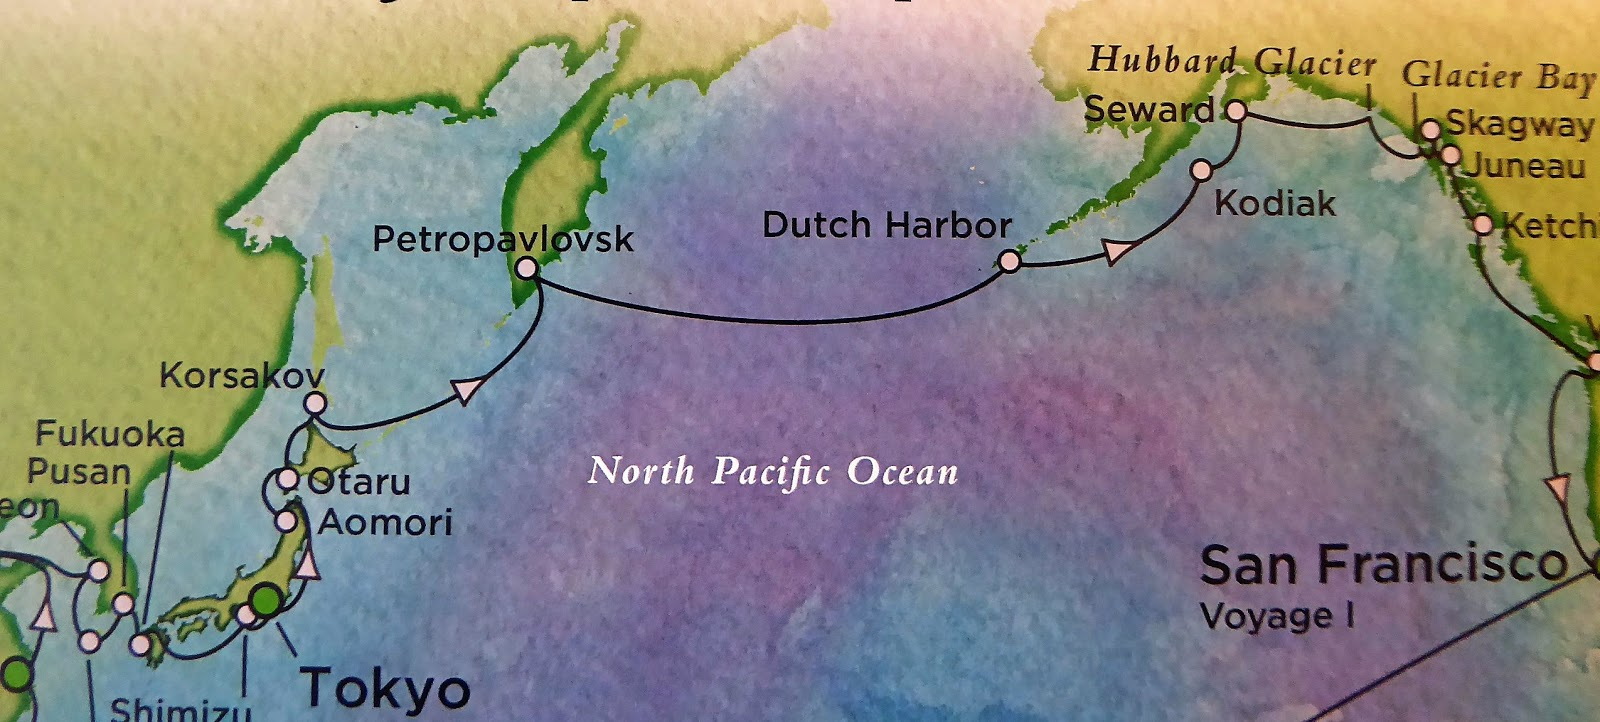 Grand aleutian dutch harbor alaska - We Arrived This Morning On Schedule At Dutch Harbor Port For Unalaska Alaska One Of The Largest Of The Aleutian Islands It Took Us Three Days At Sea